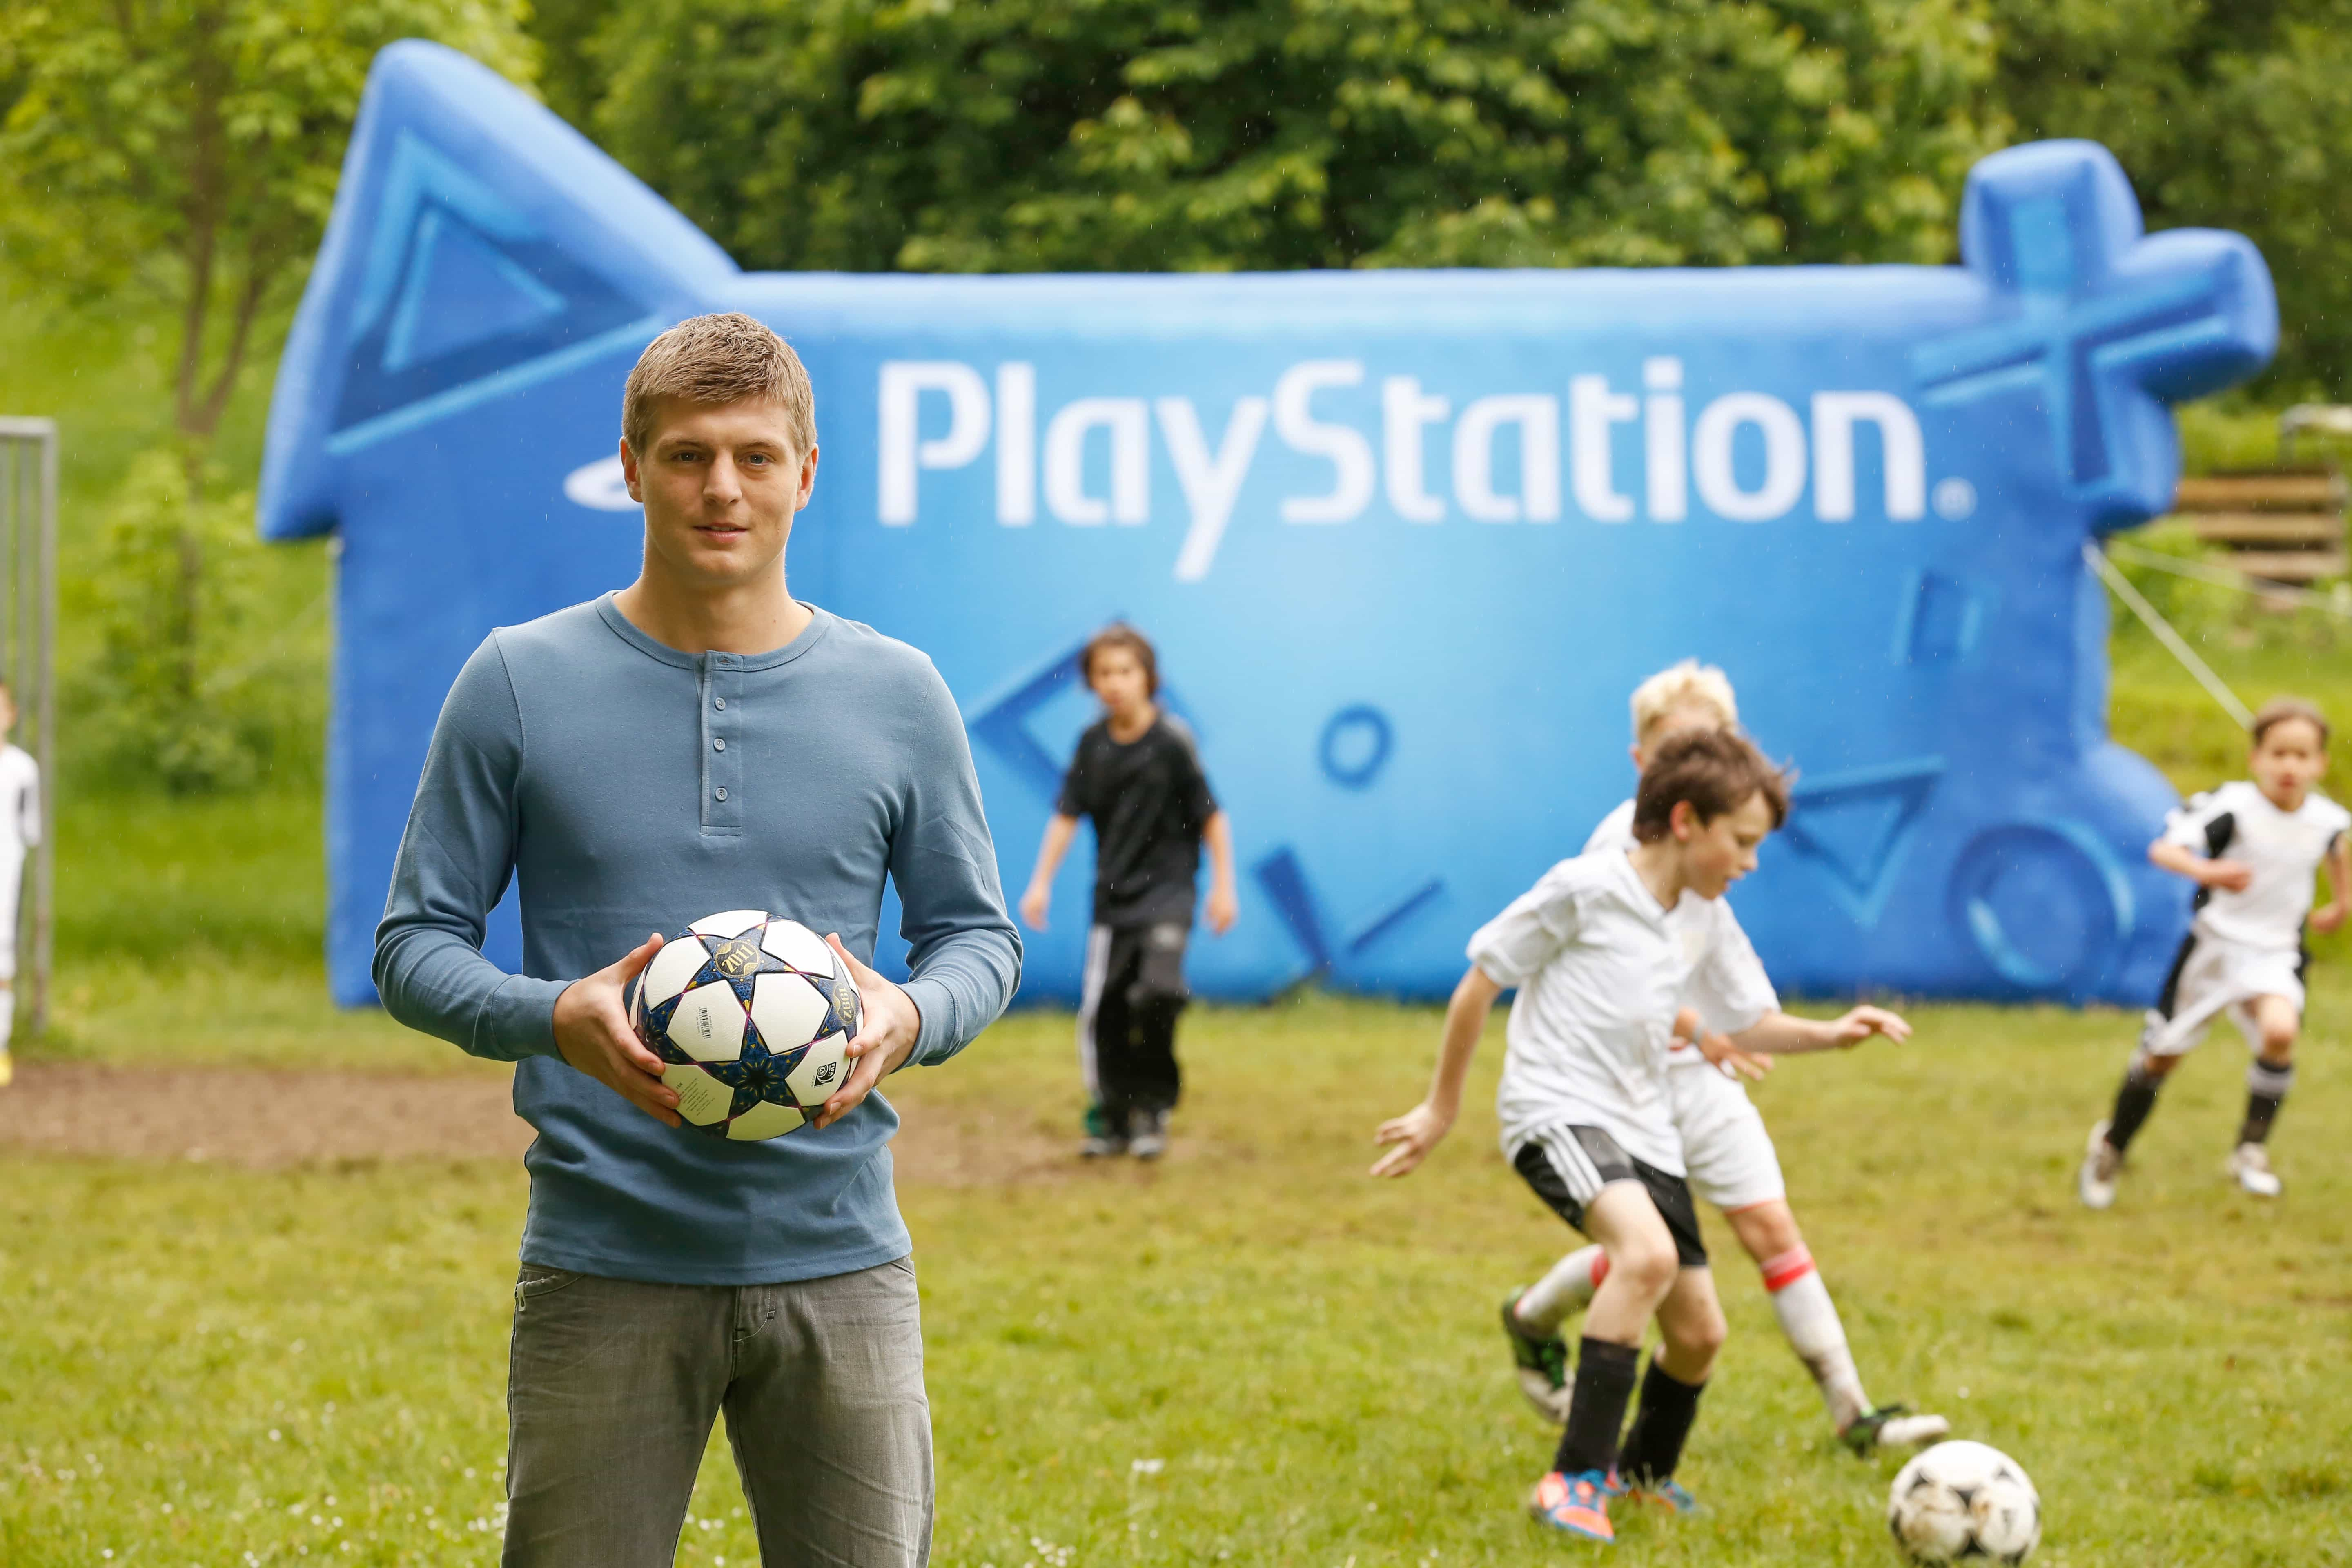 Sony PlayStation – #4theplayers!